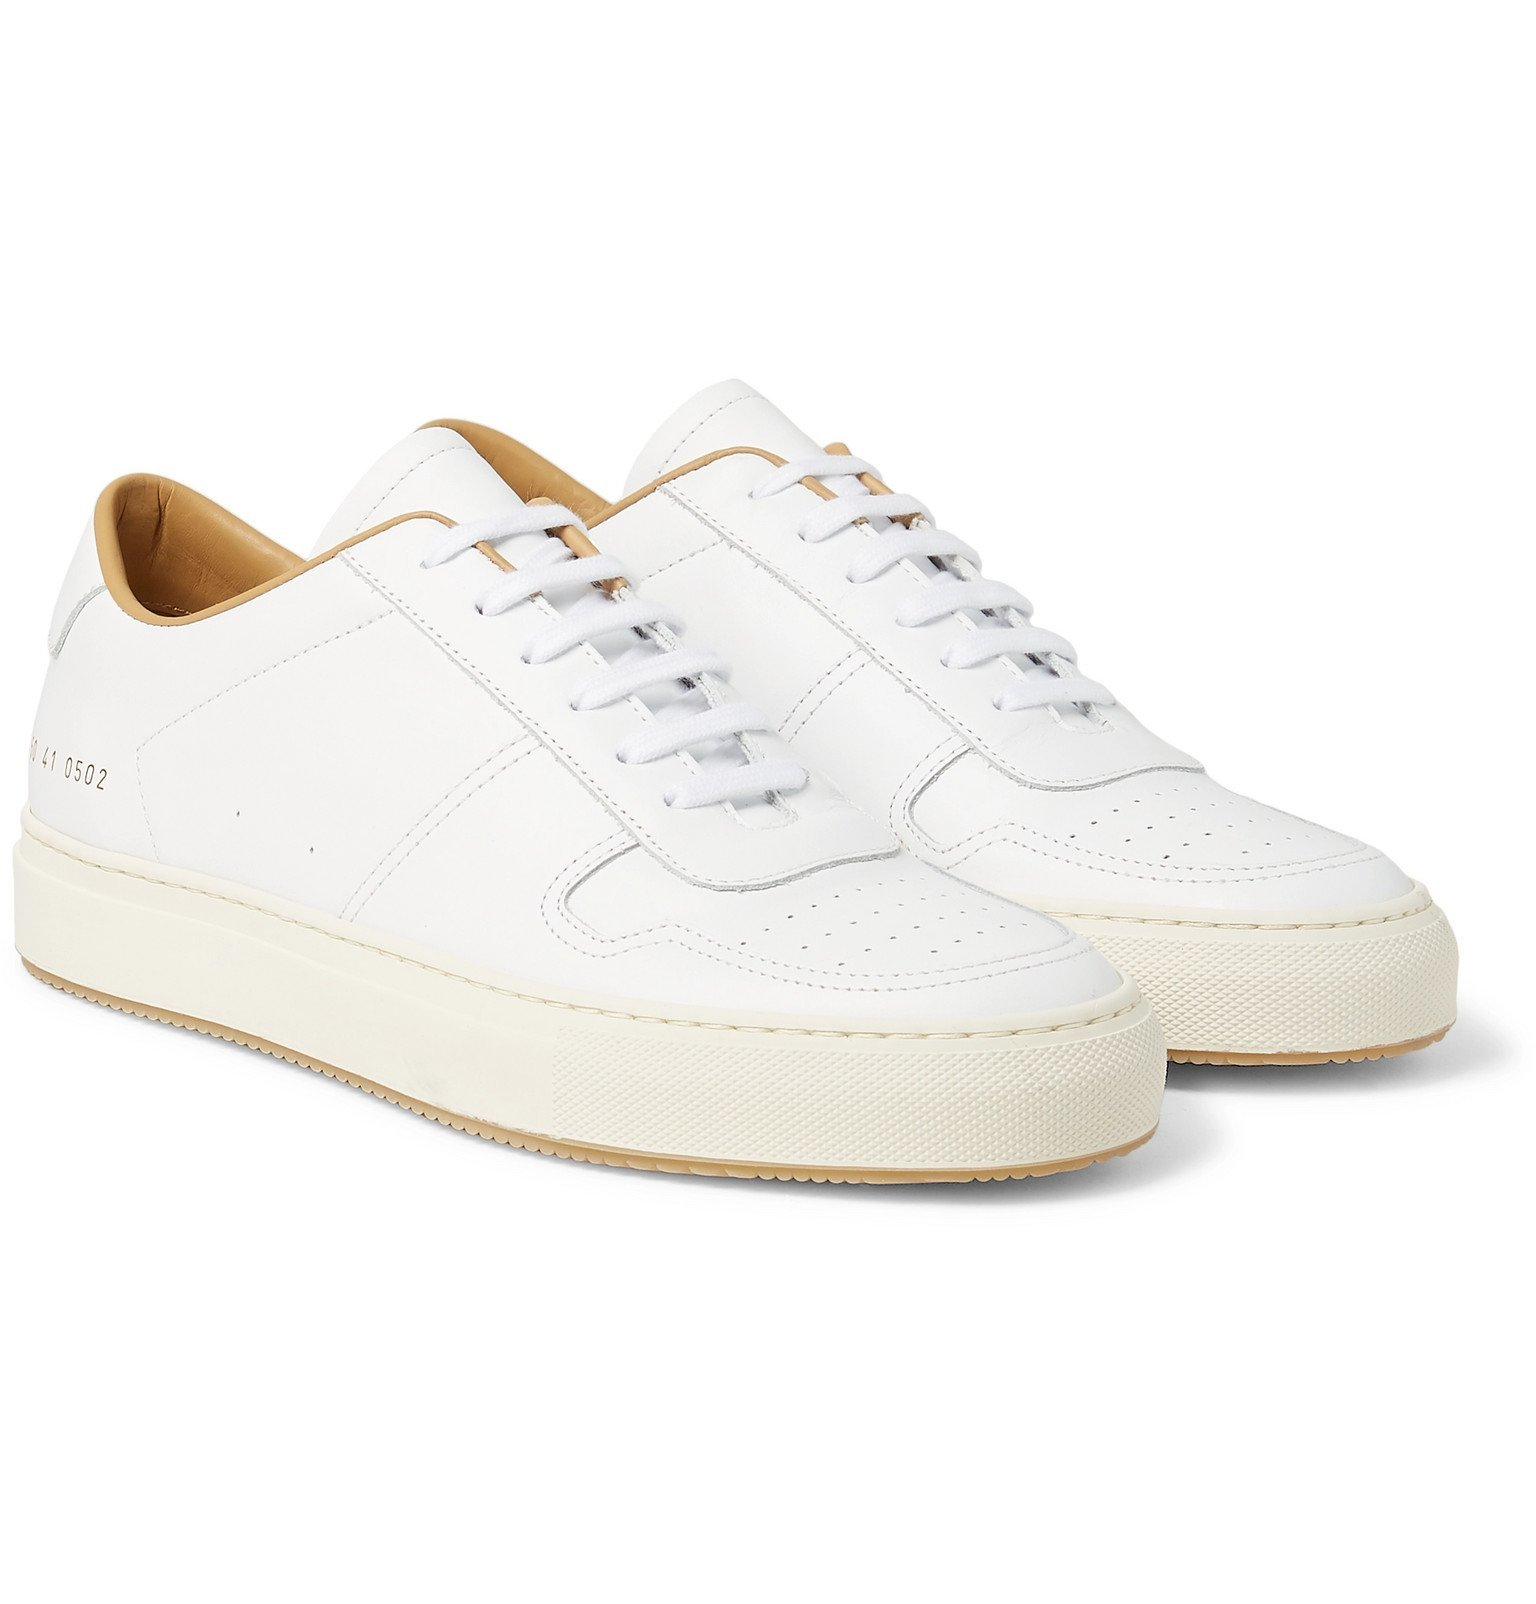 Common Projects - BBall 88 Leather Sneakers - White